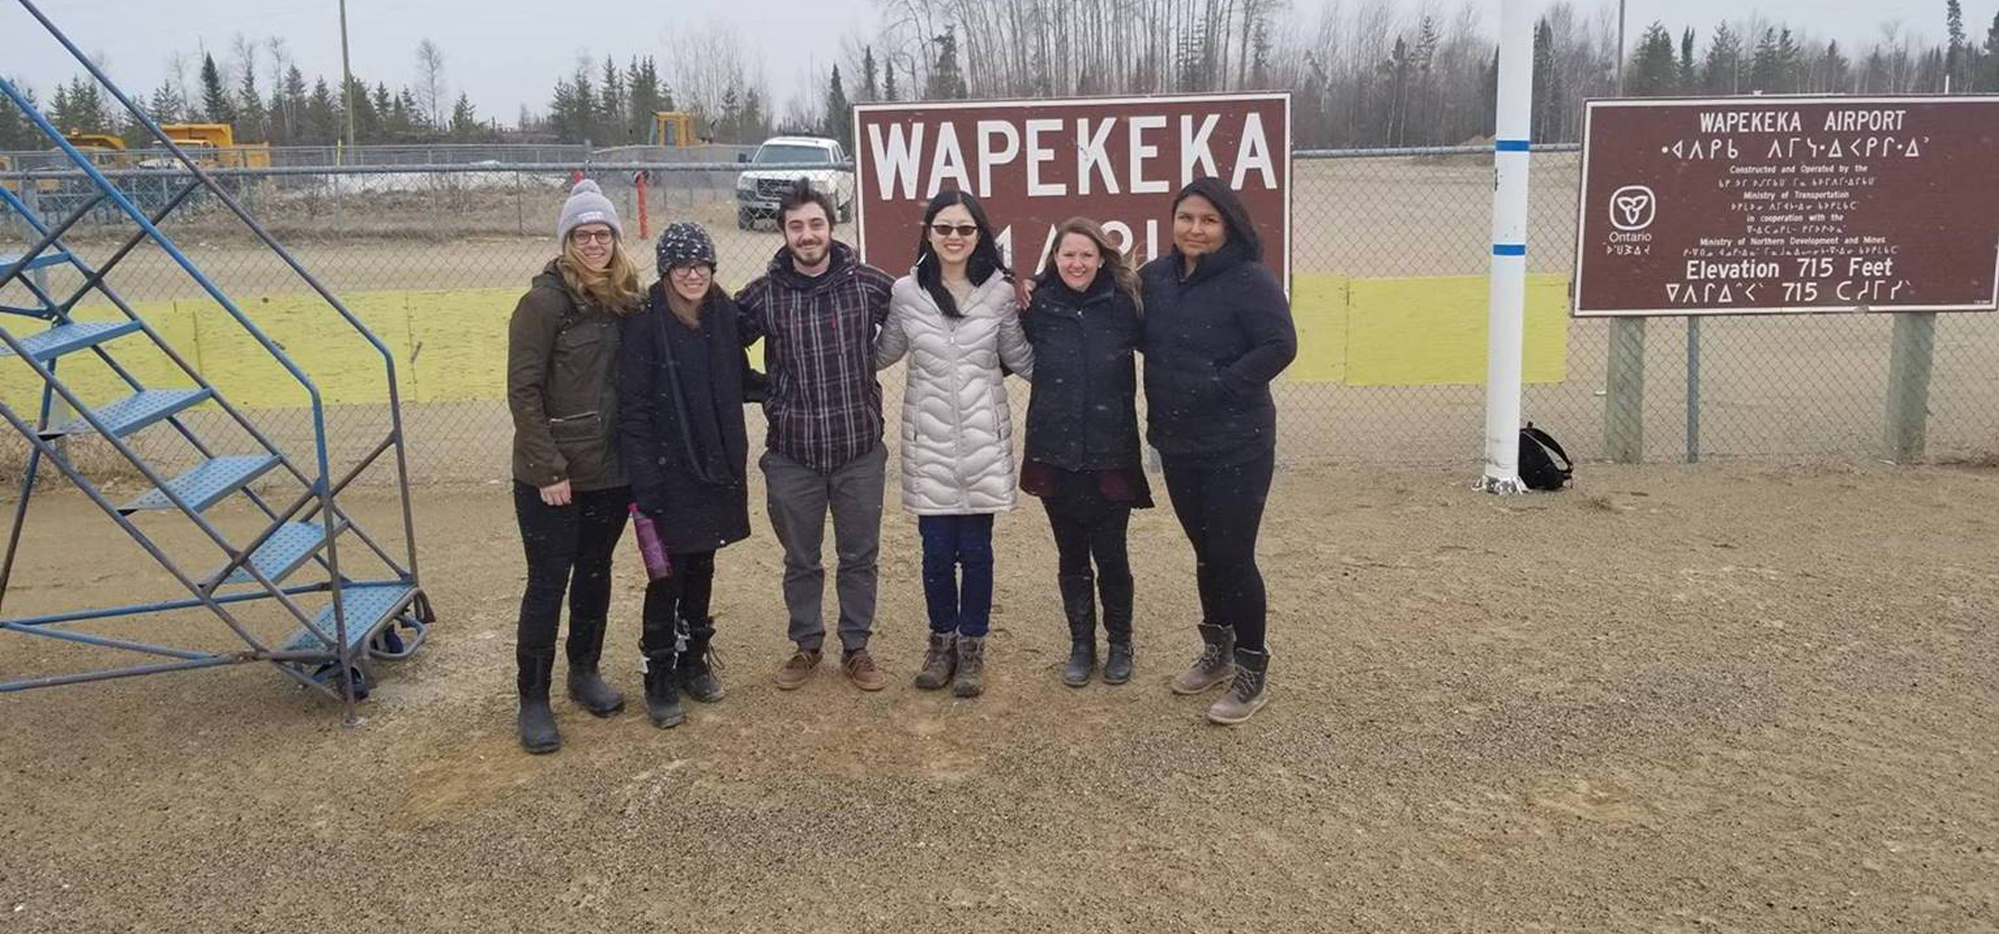 Christine and coworkers arrive in Wapeka First Nation